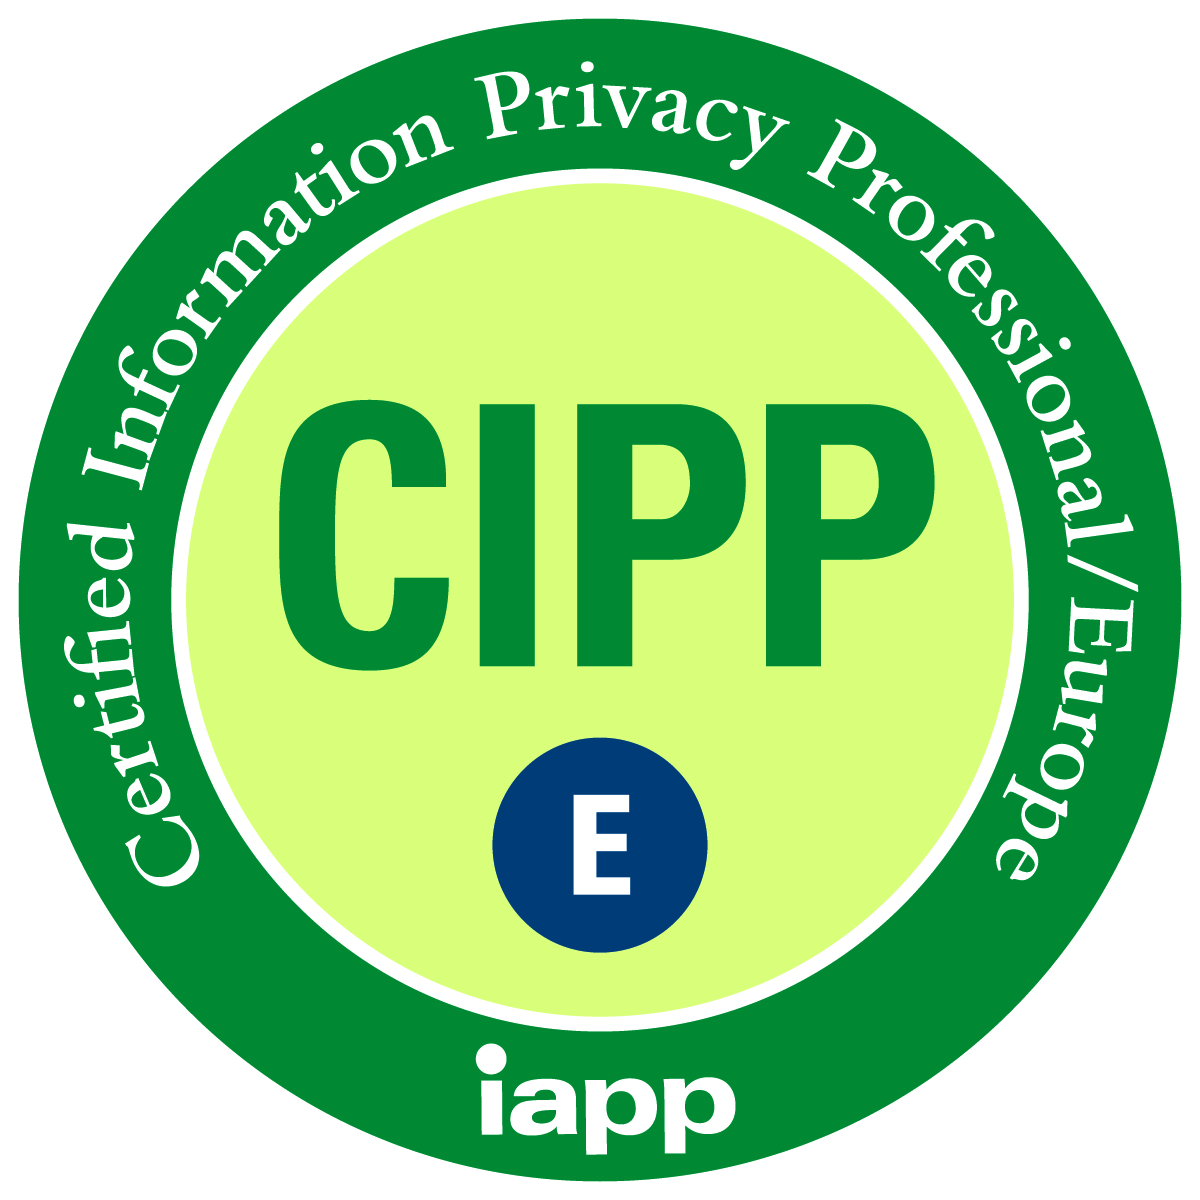 CERTIFIED Information Privacy Professional Europe IAPP GDPR